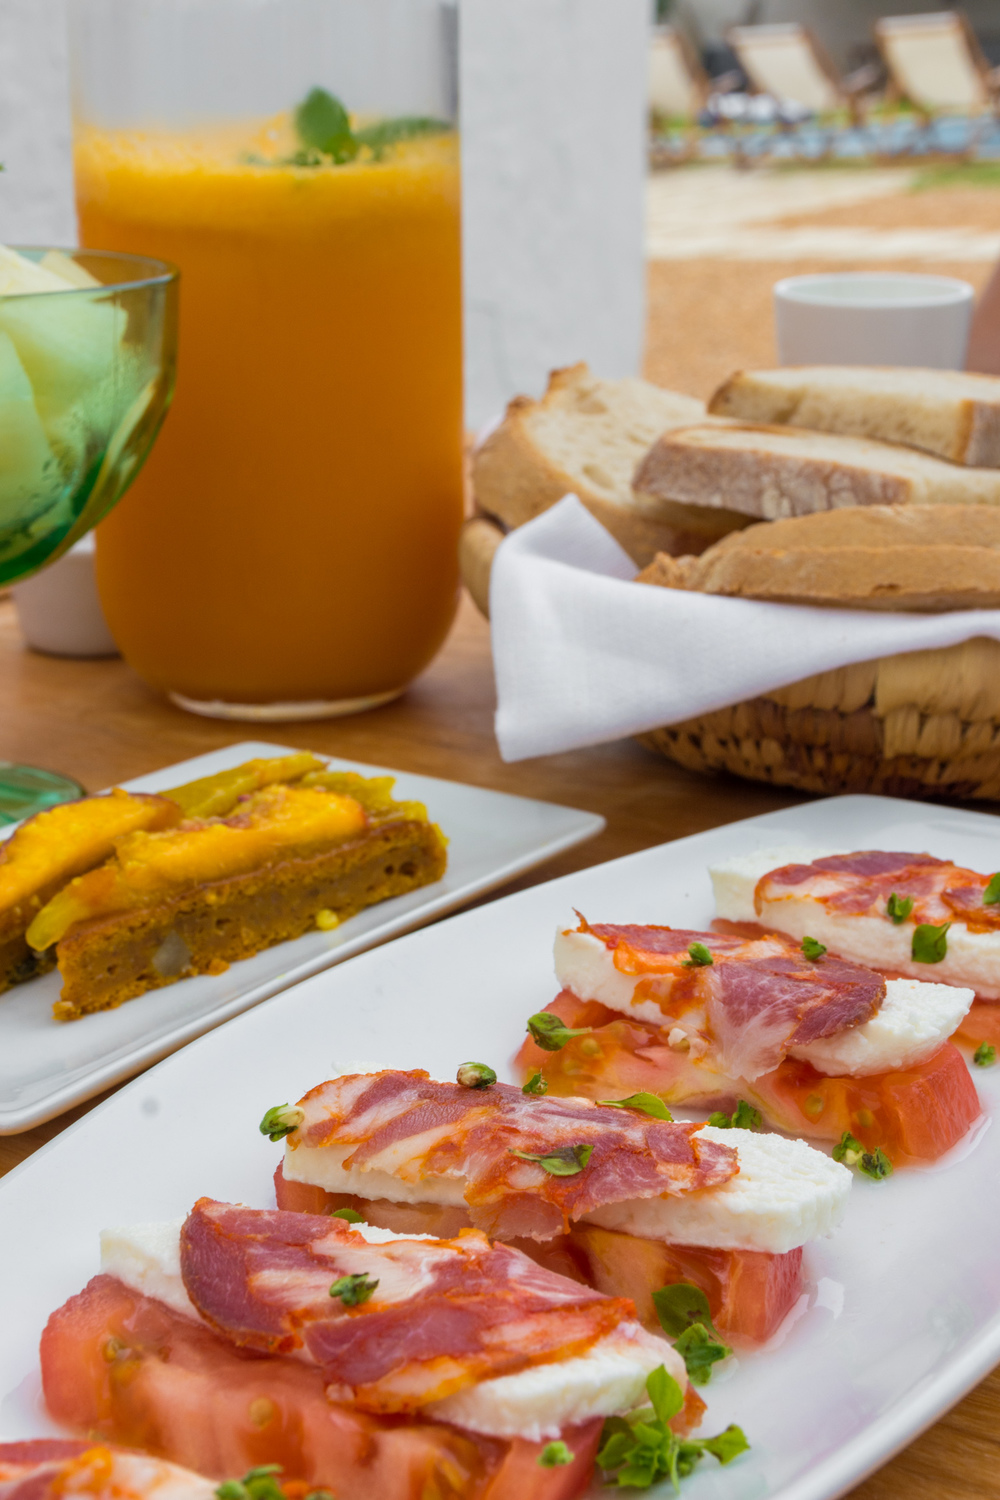 Our daily breakfast always consisted of fresh juice, fruits, pastries, meats & cheeses.